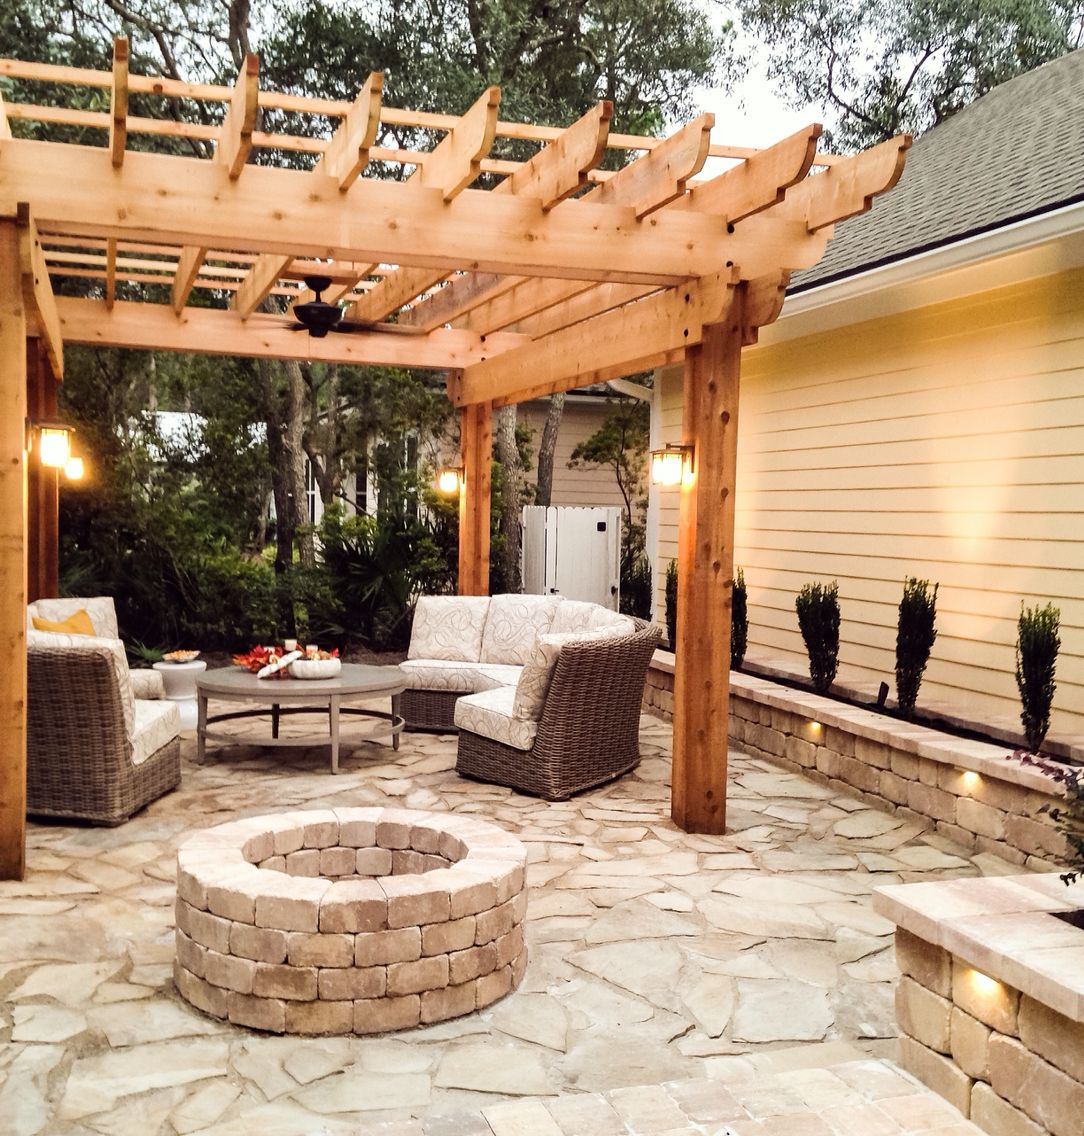 pergola pavers flagstone patio fire pit backyard lawn